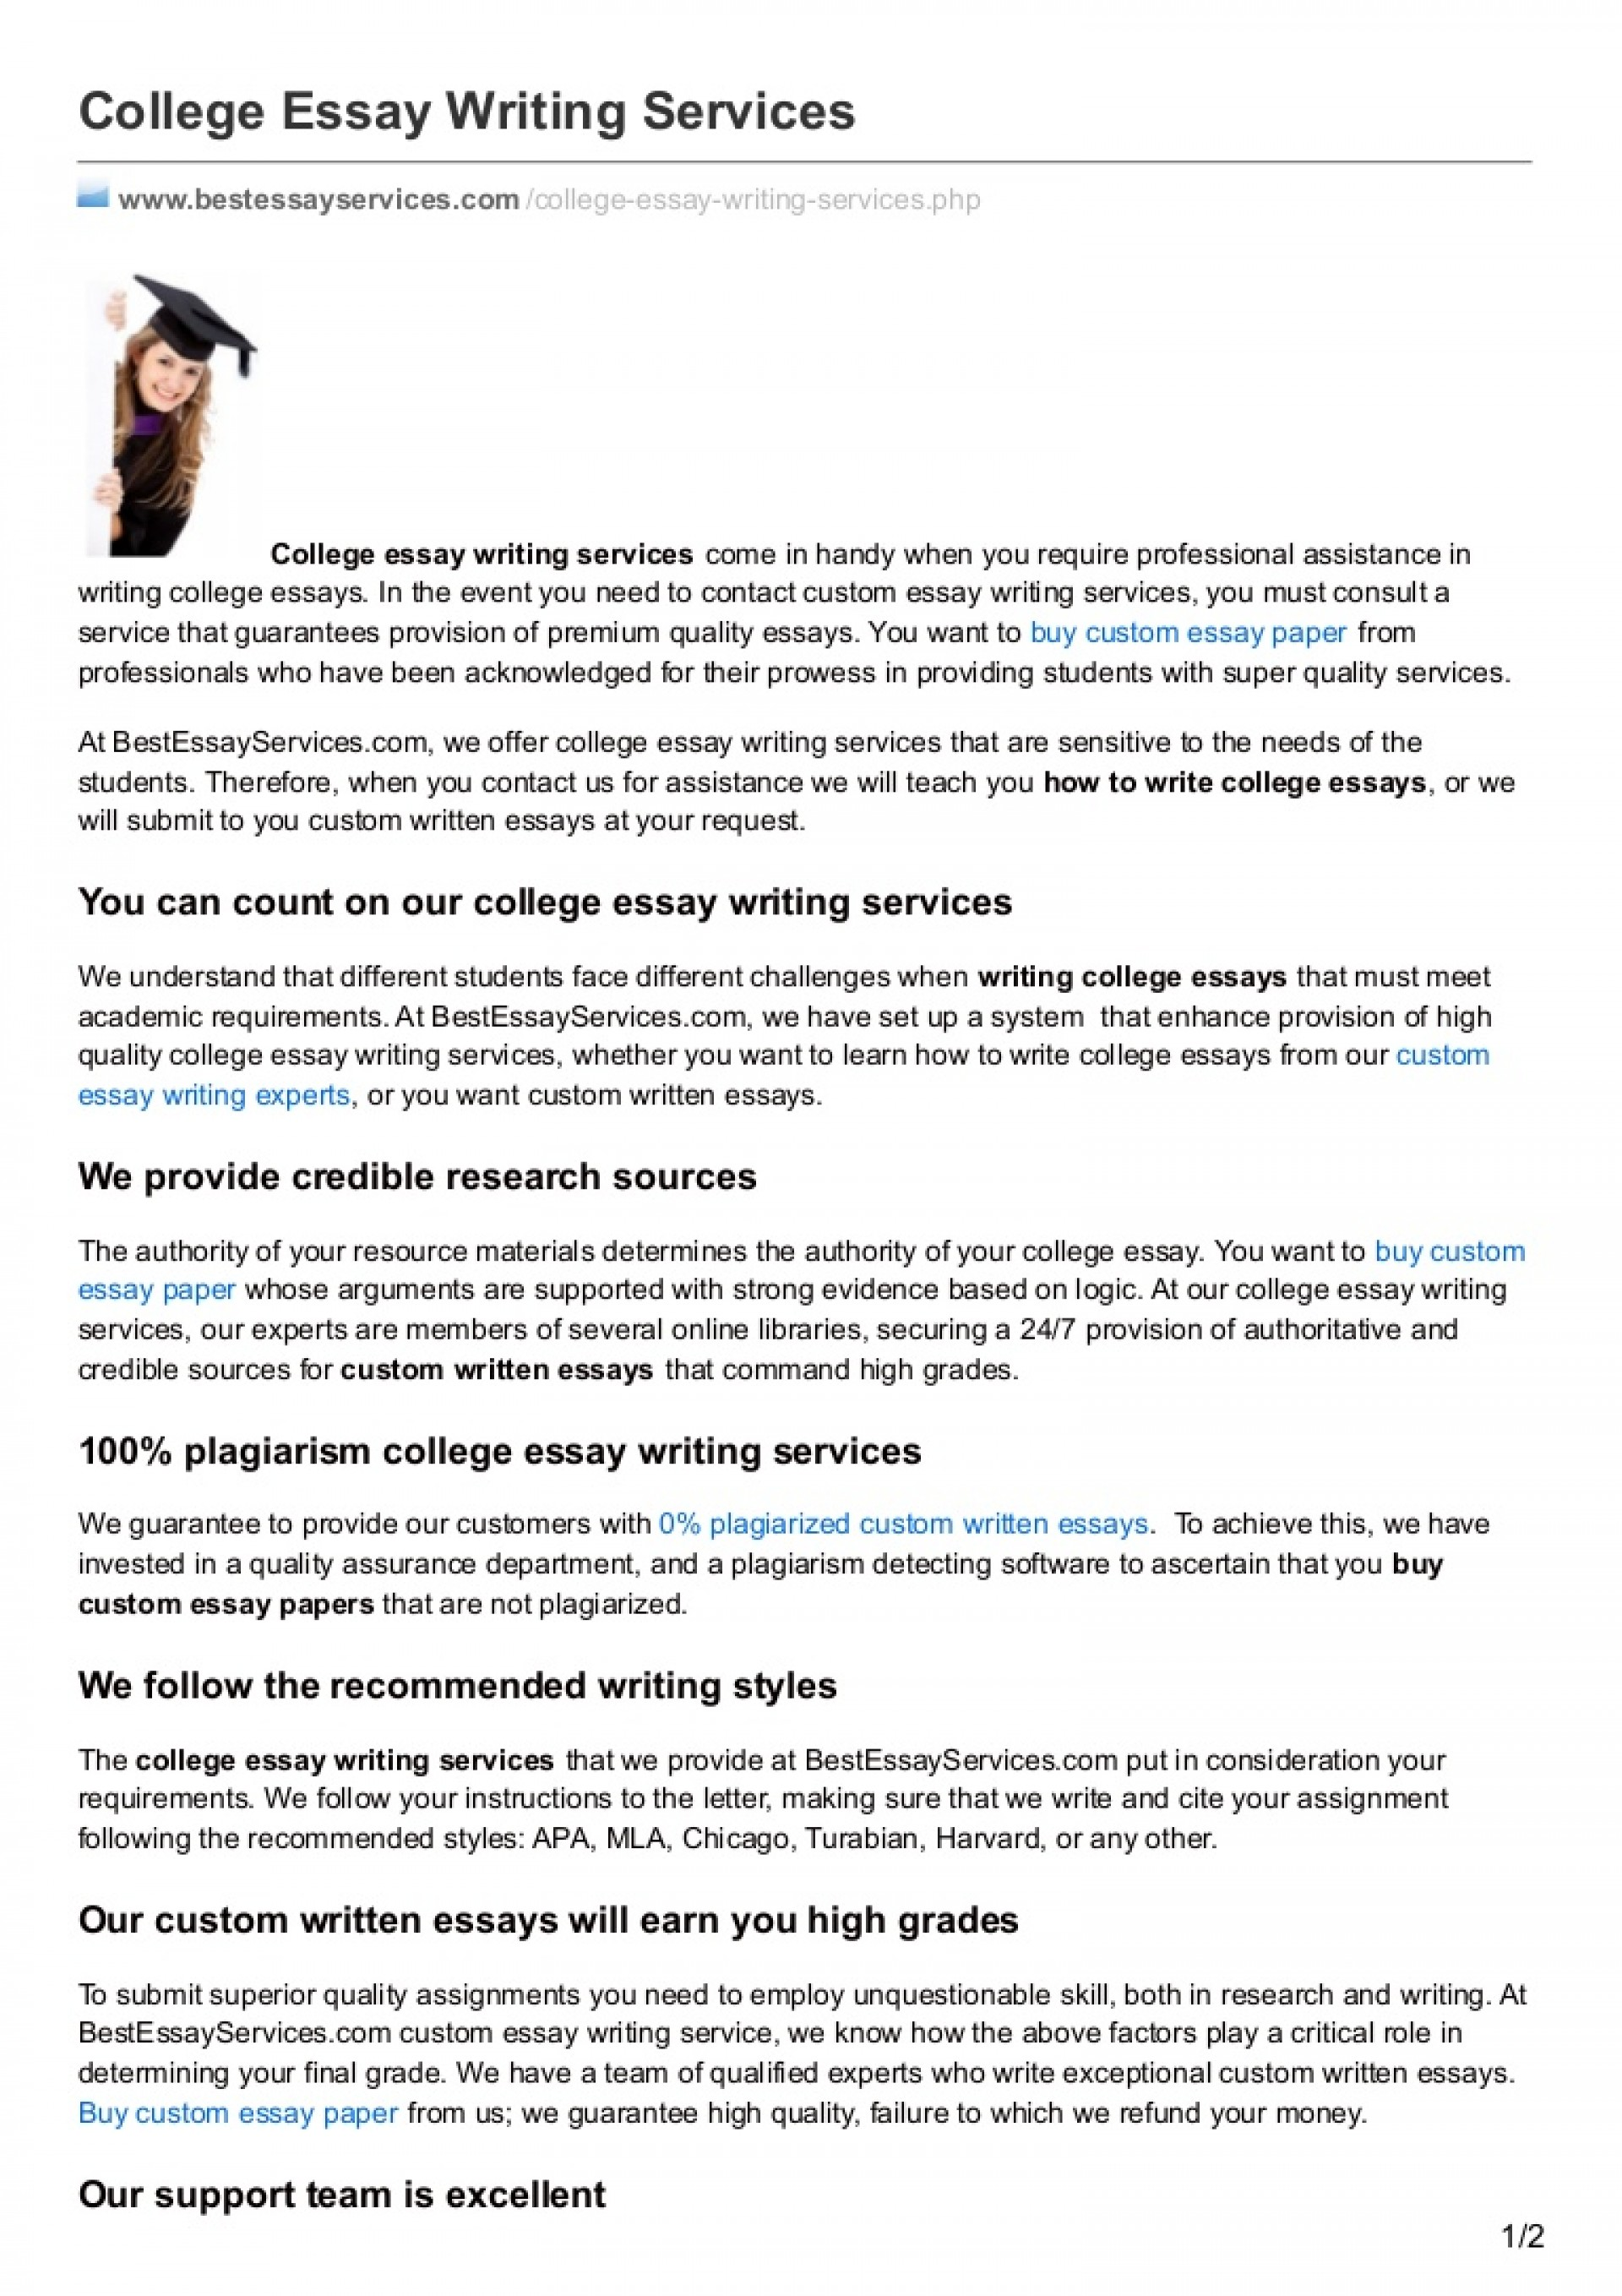 016 College Essay Service Example Bestessayservices Thumbnail Awful Writing Reviews Services Cheap 1920